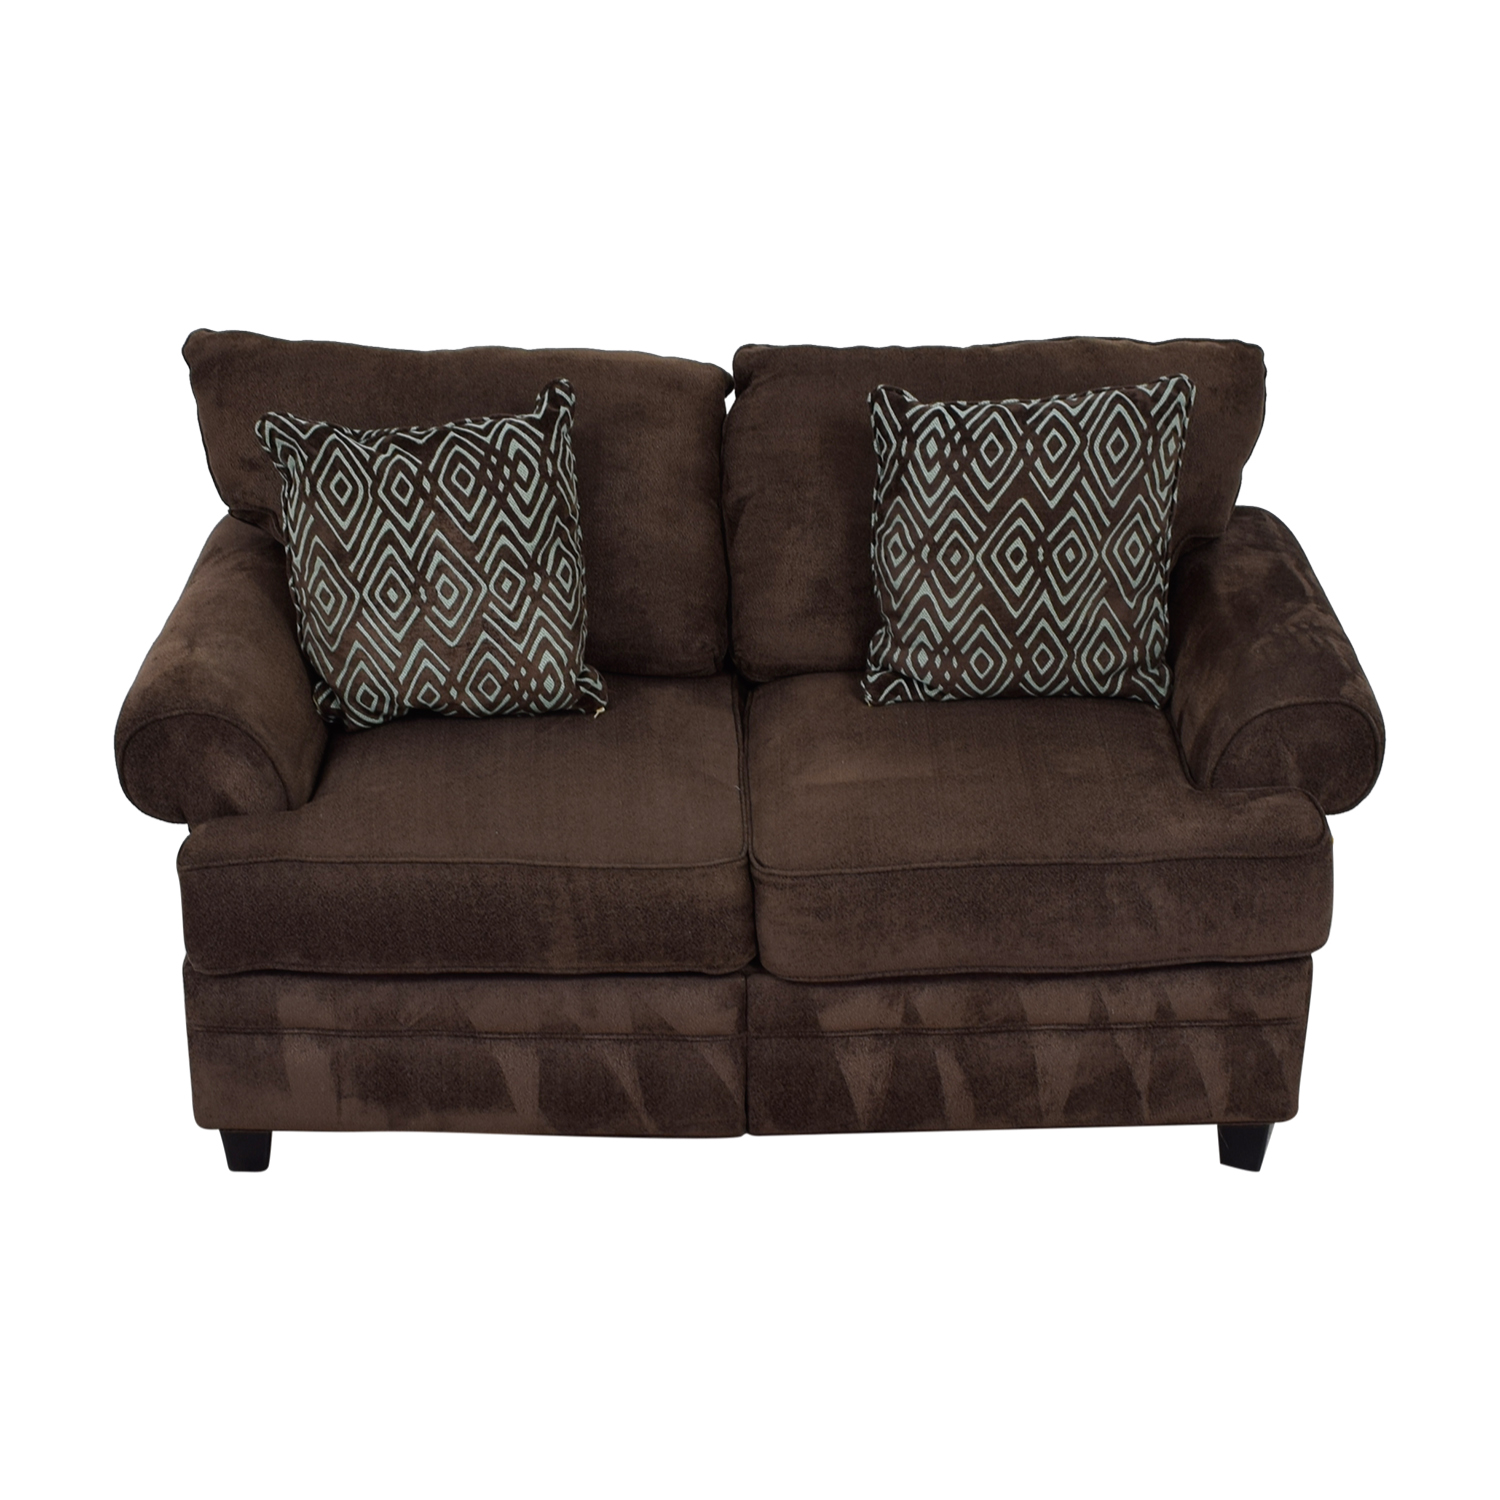 Bob's Furniture Brown Two-Cushion Love Seat / Loveseats